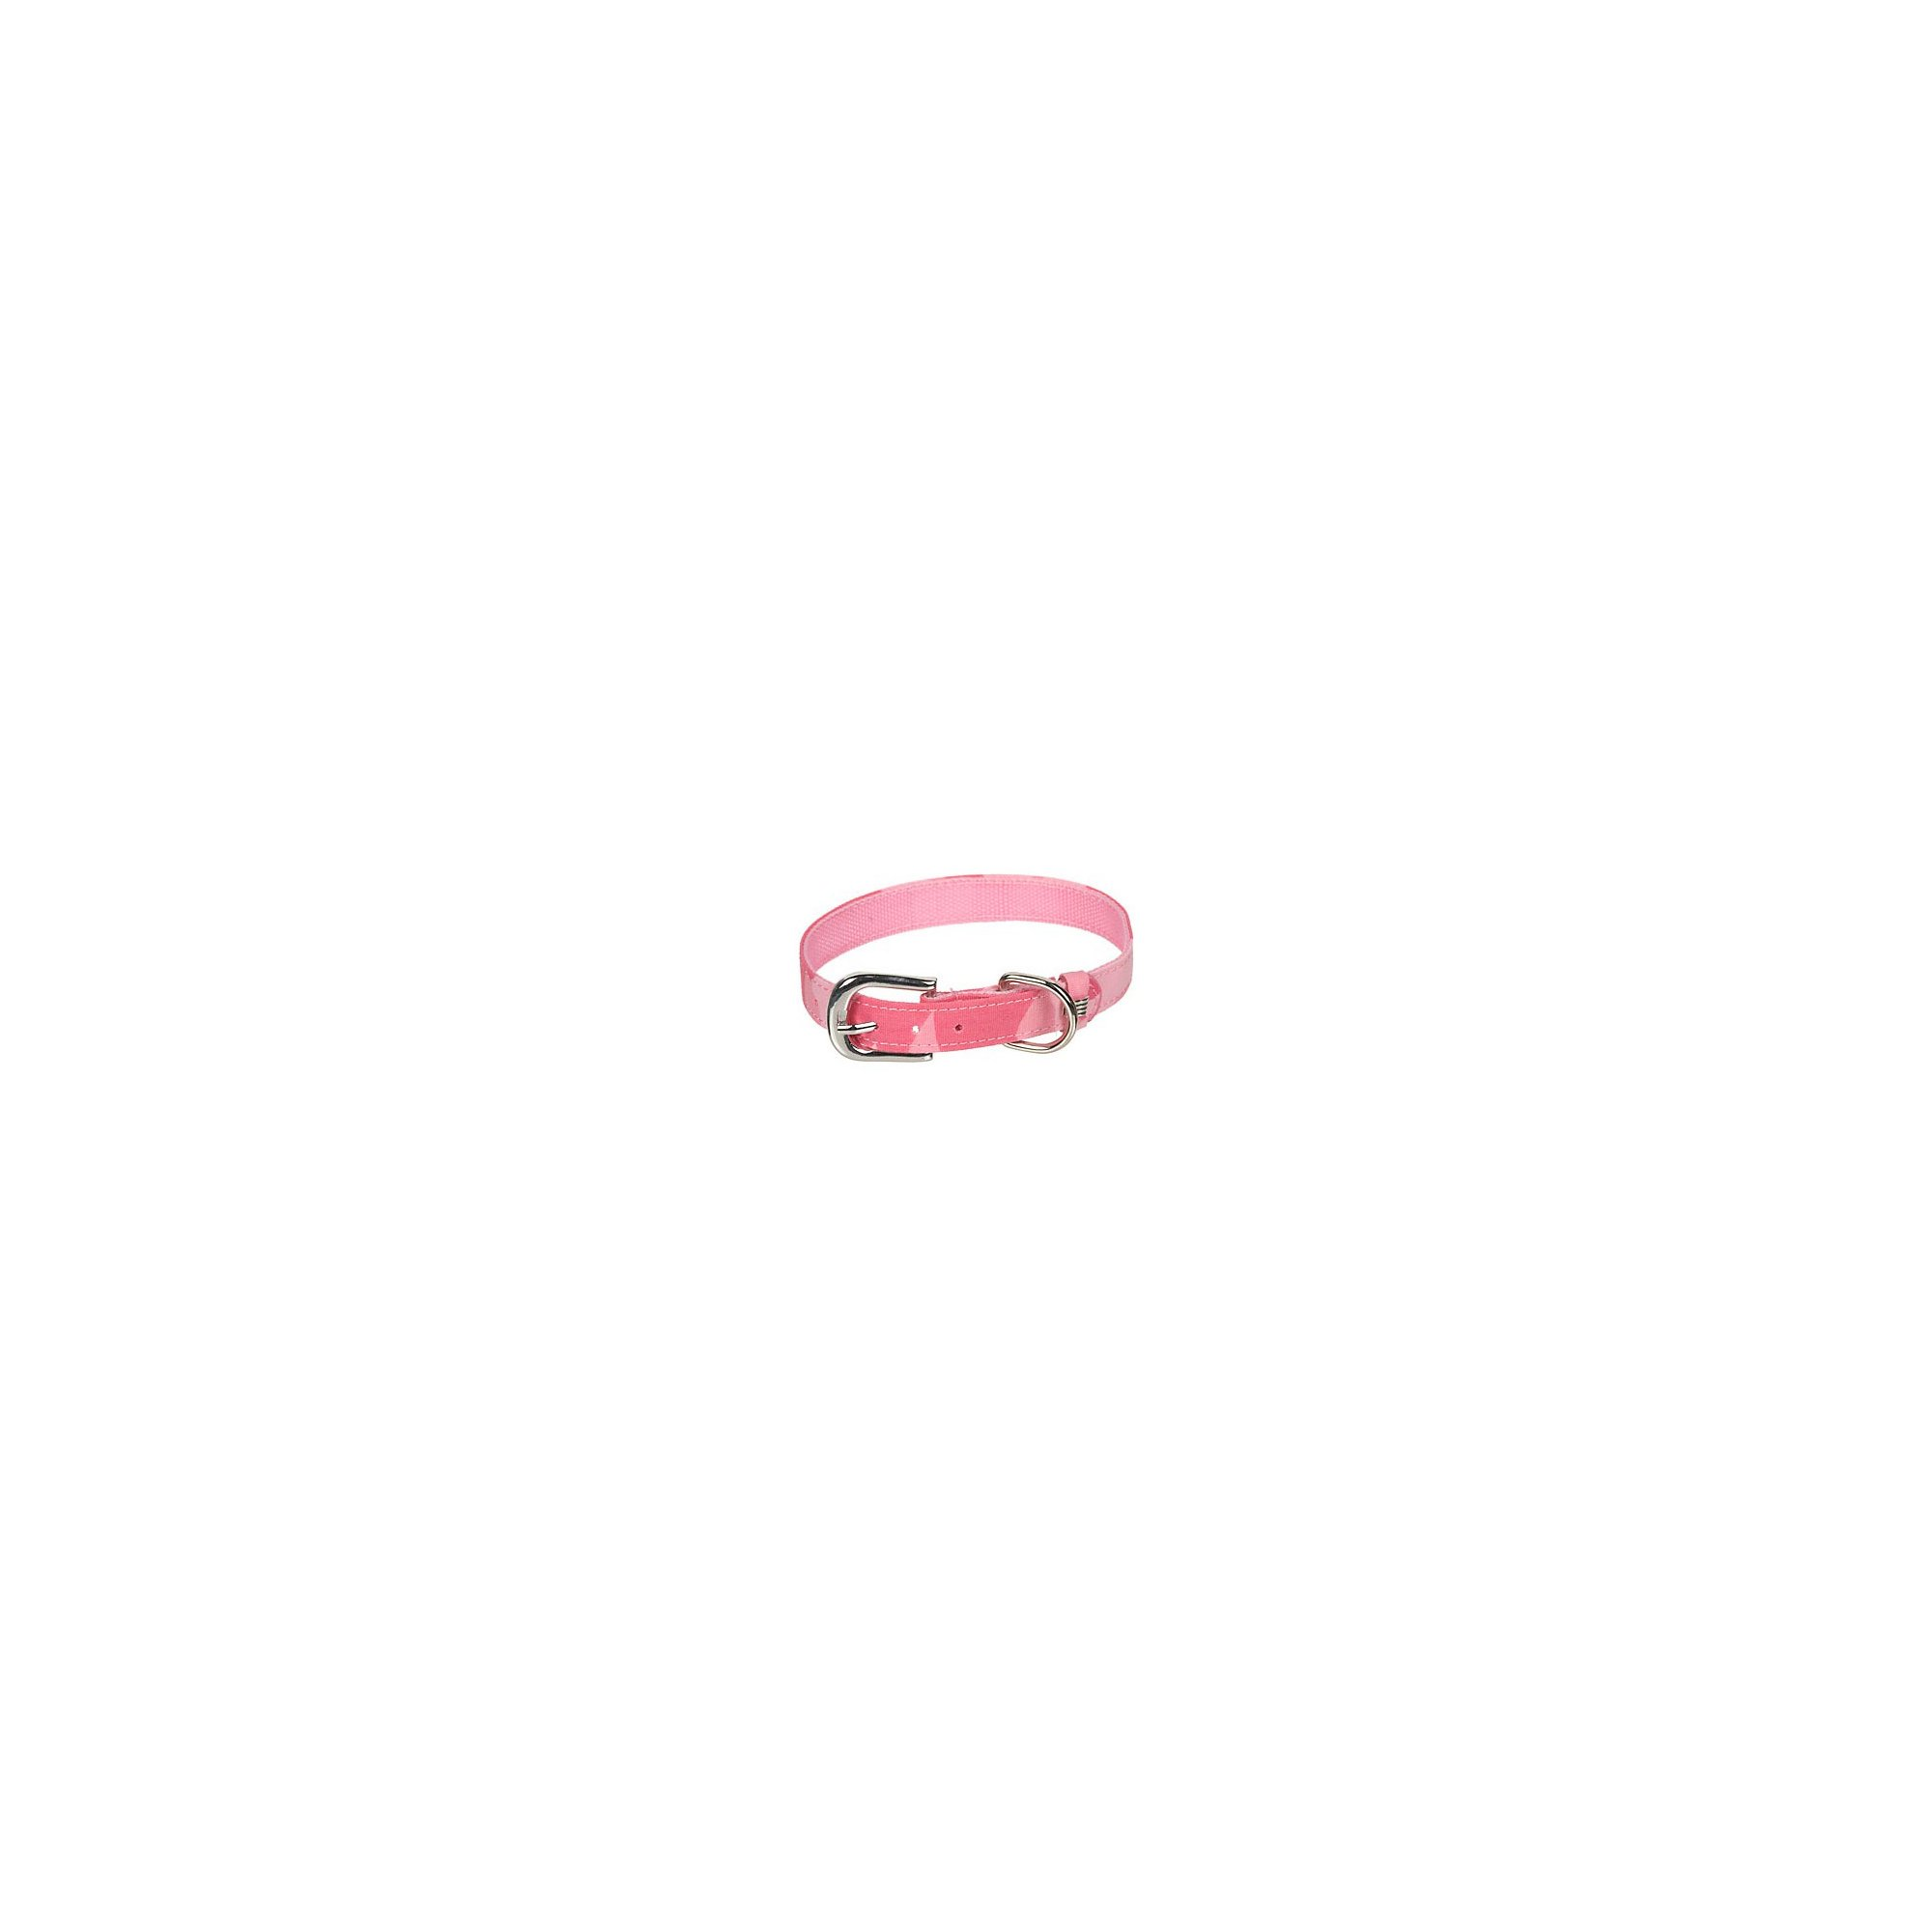 Fashion Angels Create-a-Collar X-Small 10 mm Charm Collar in Pink Camo